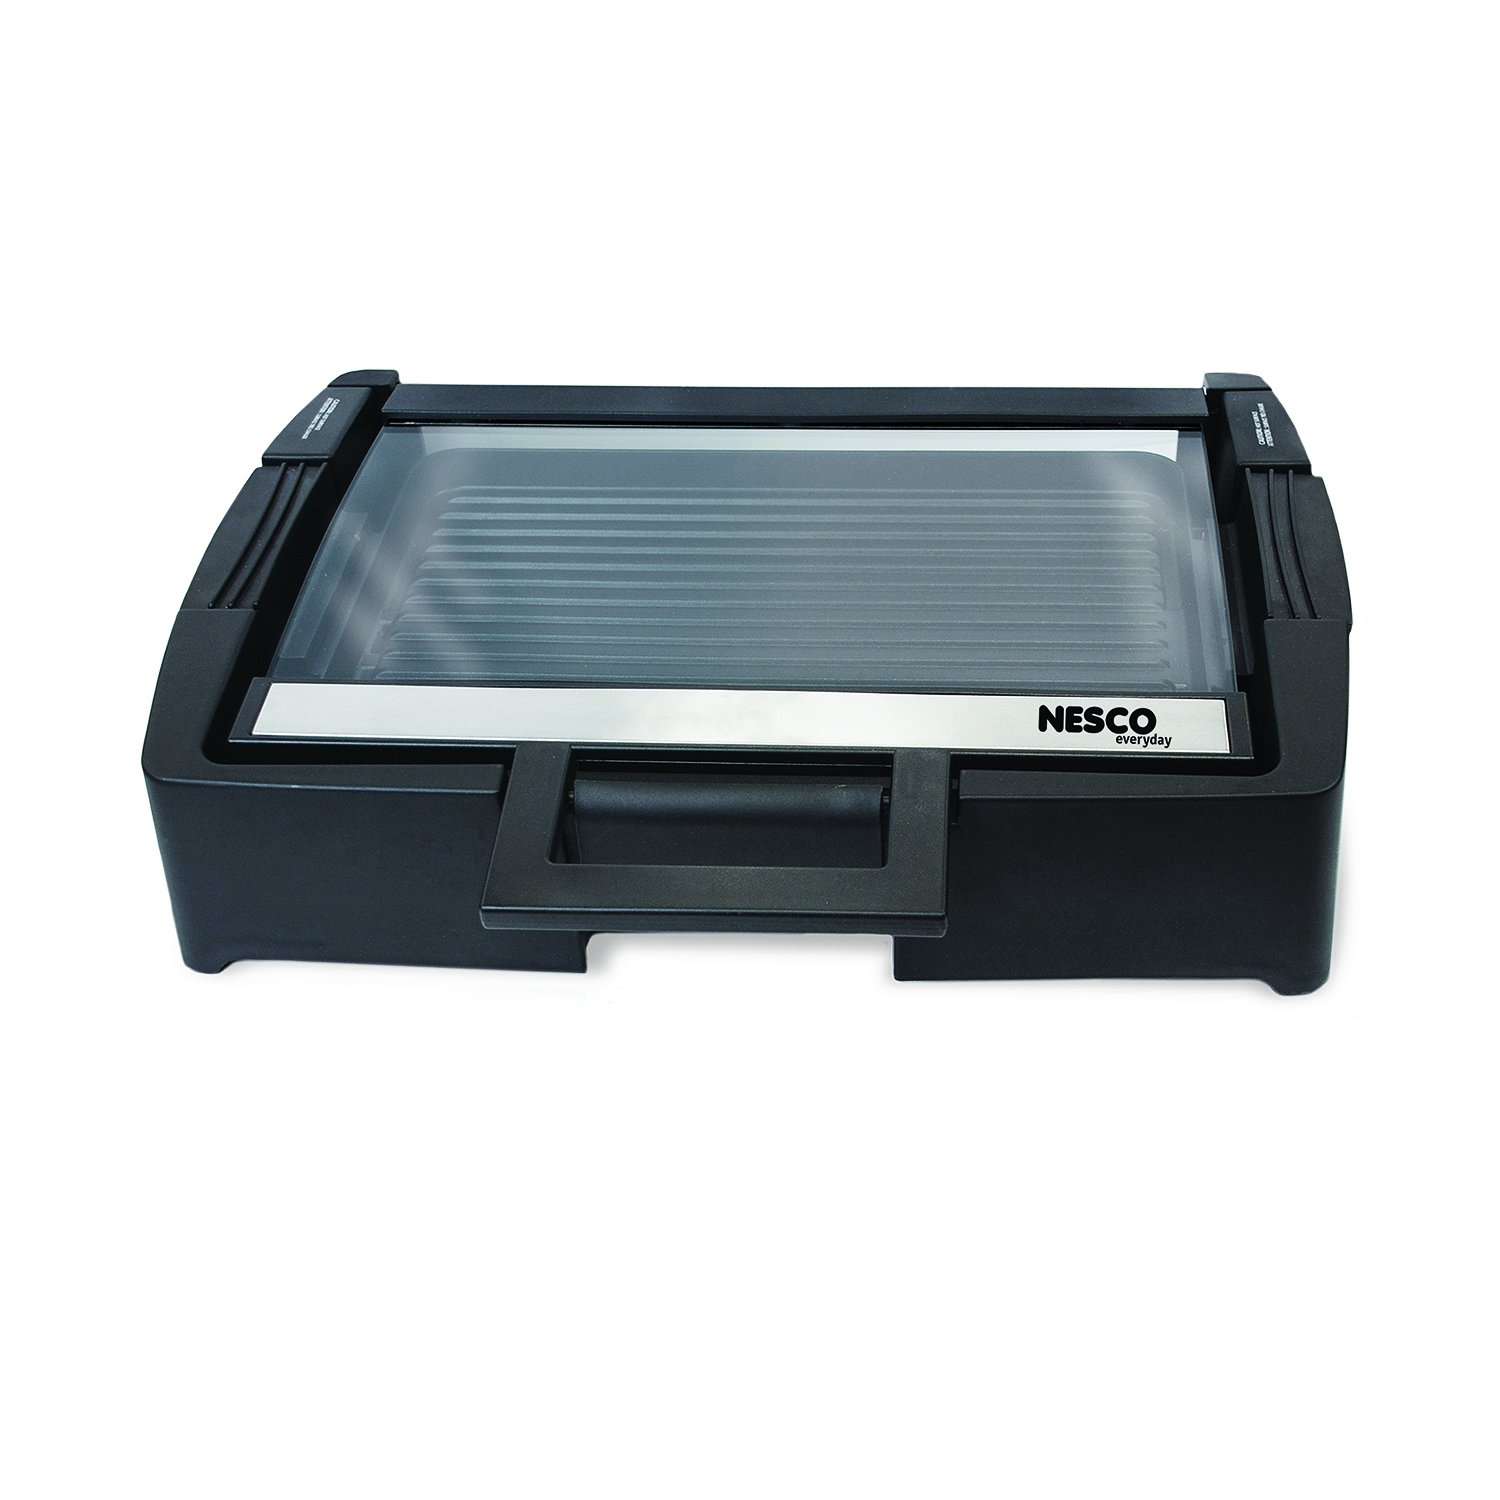 Nesco American Harvest GRG-1000 Electric Grill with Glass Lid, Black